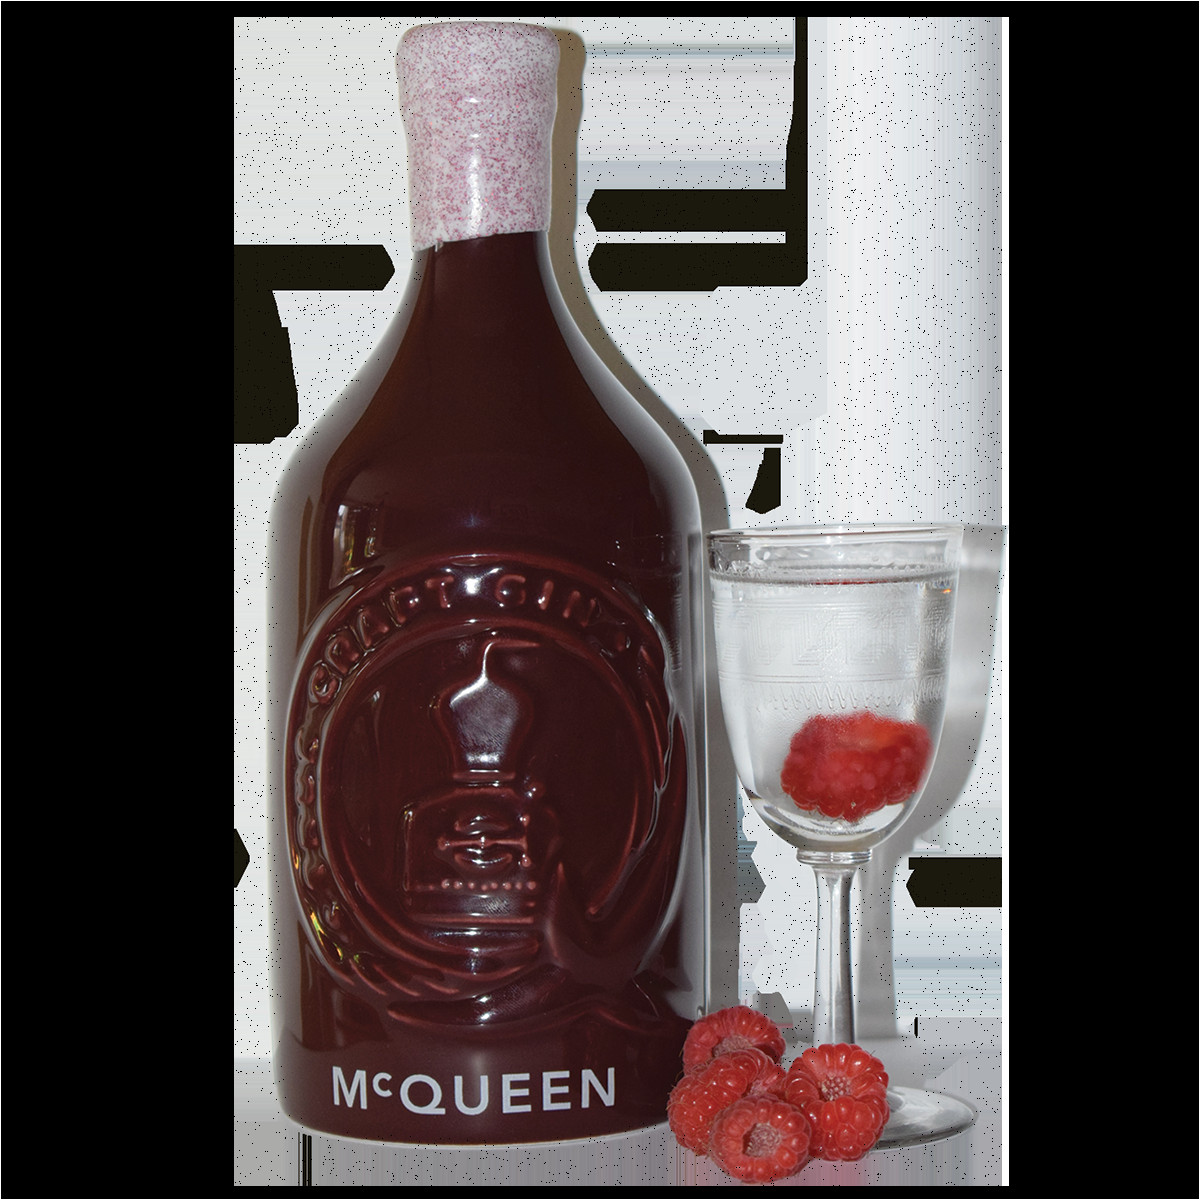 limited edition gin number 2 white chocolate and scottish raspberries now on sale until 30th